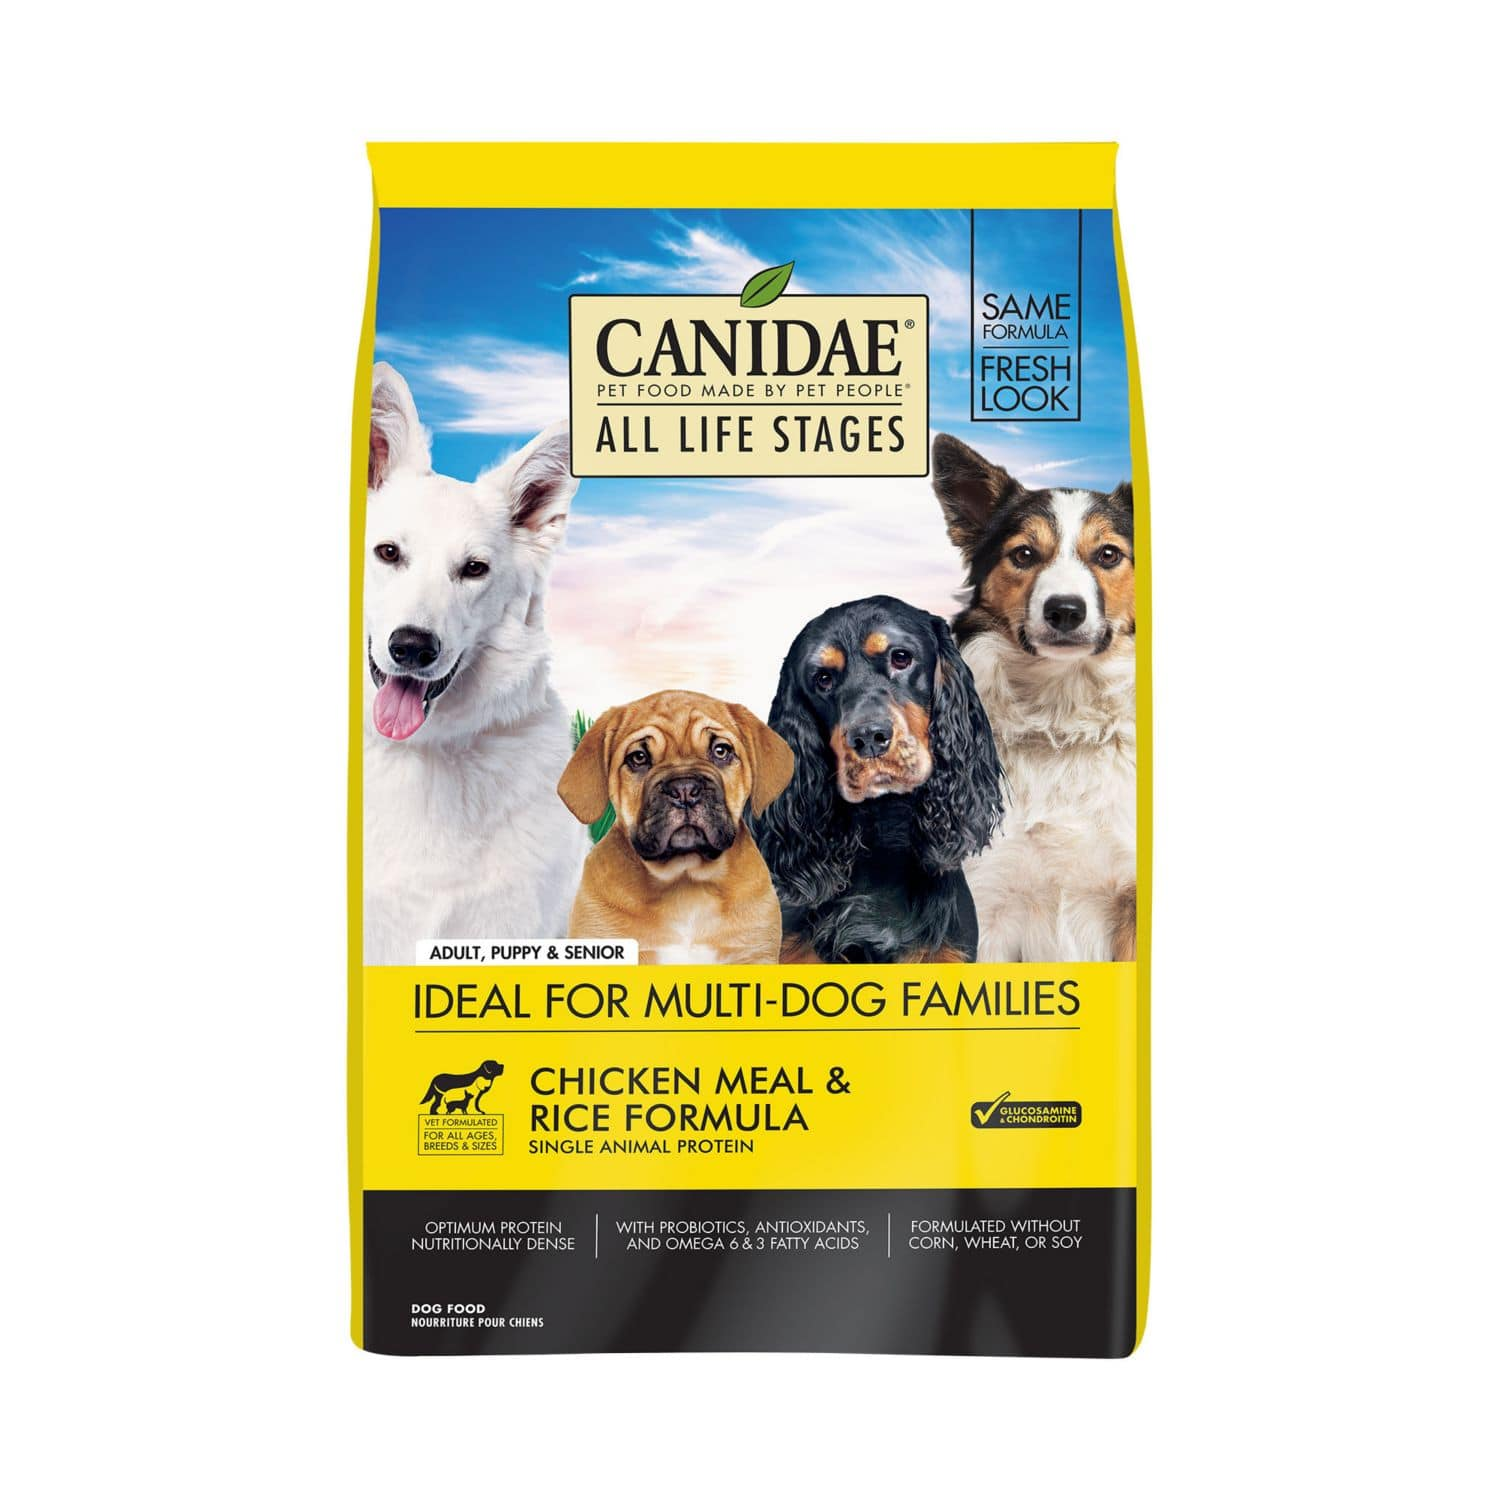 Free 5lb. Canidae Dog Food - Tractor Supply  In Store Only Neighors Club (Free to Join) Coupon YMMV